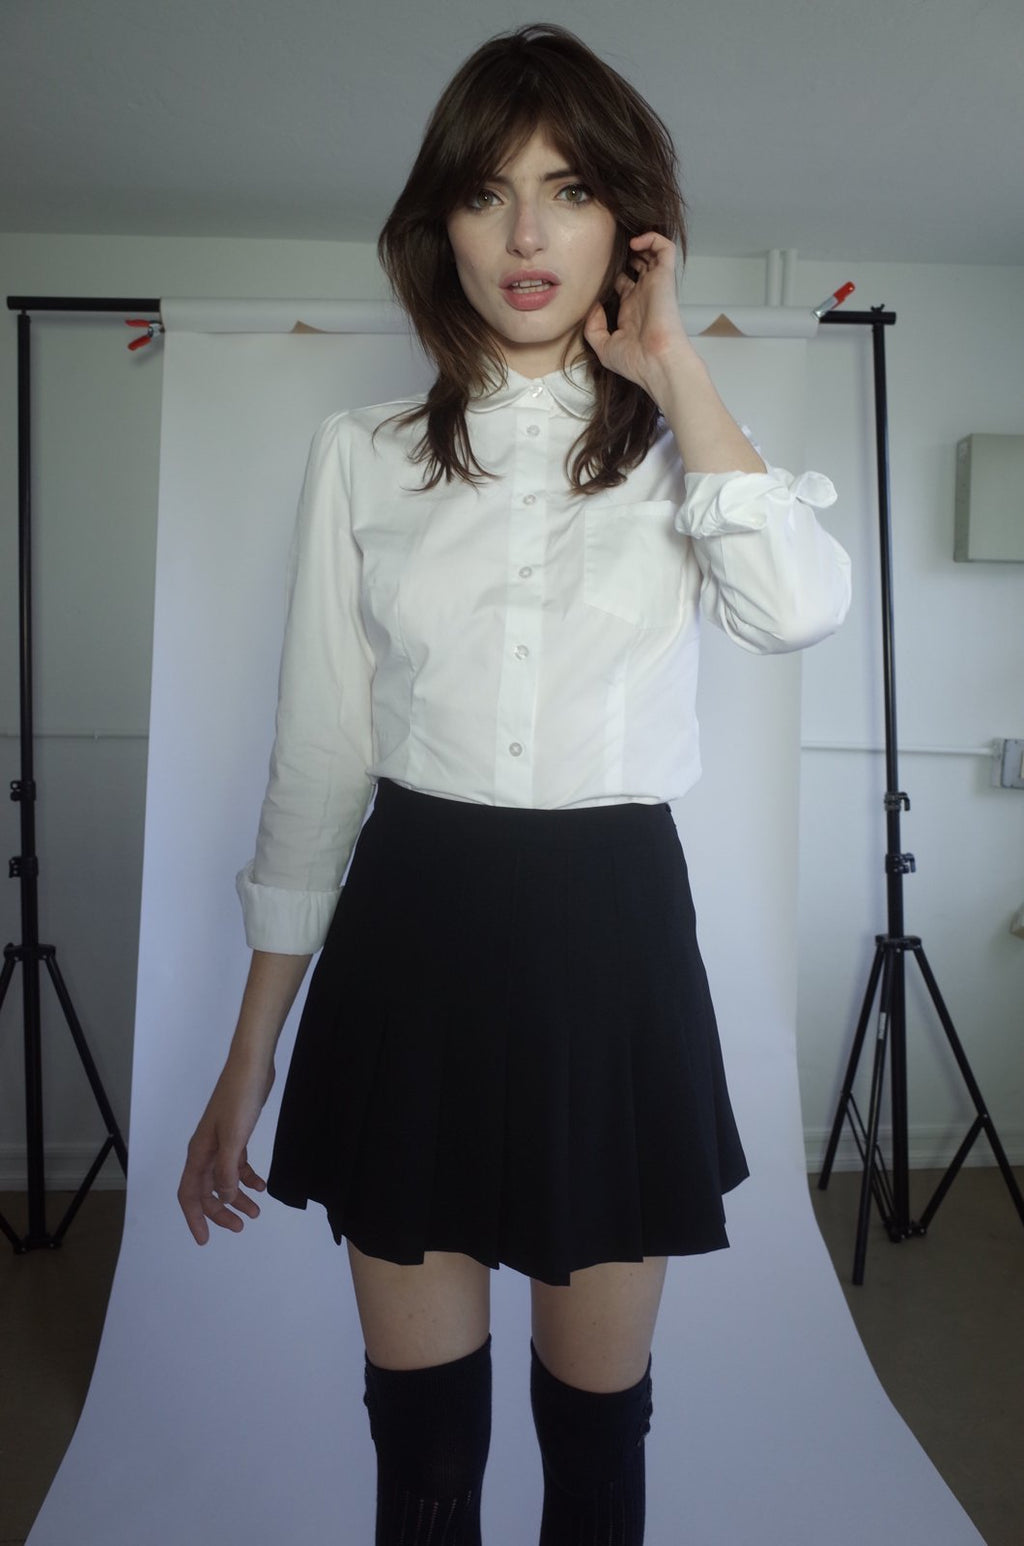 Long Sleeve Peter Pan Collar Button Up Blouse - L'école Des Femmes